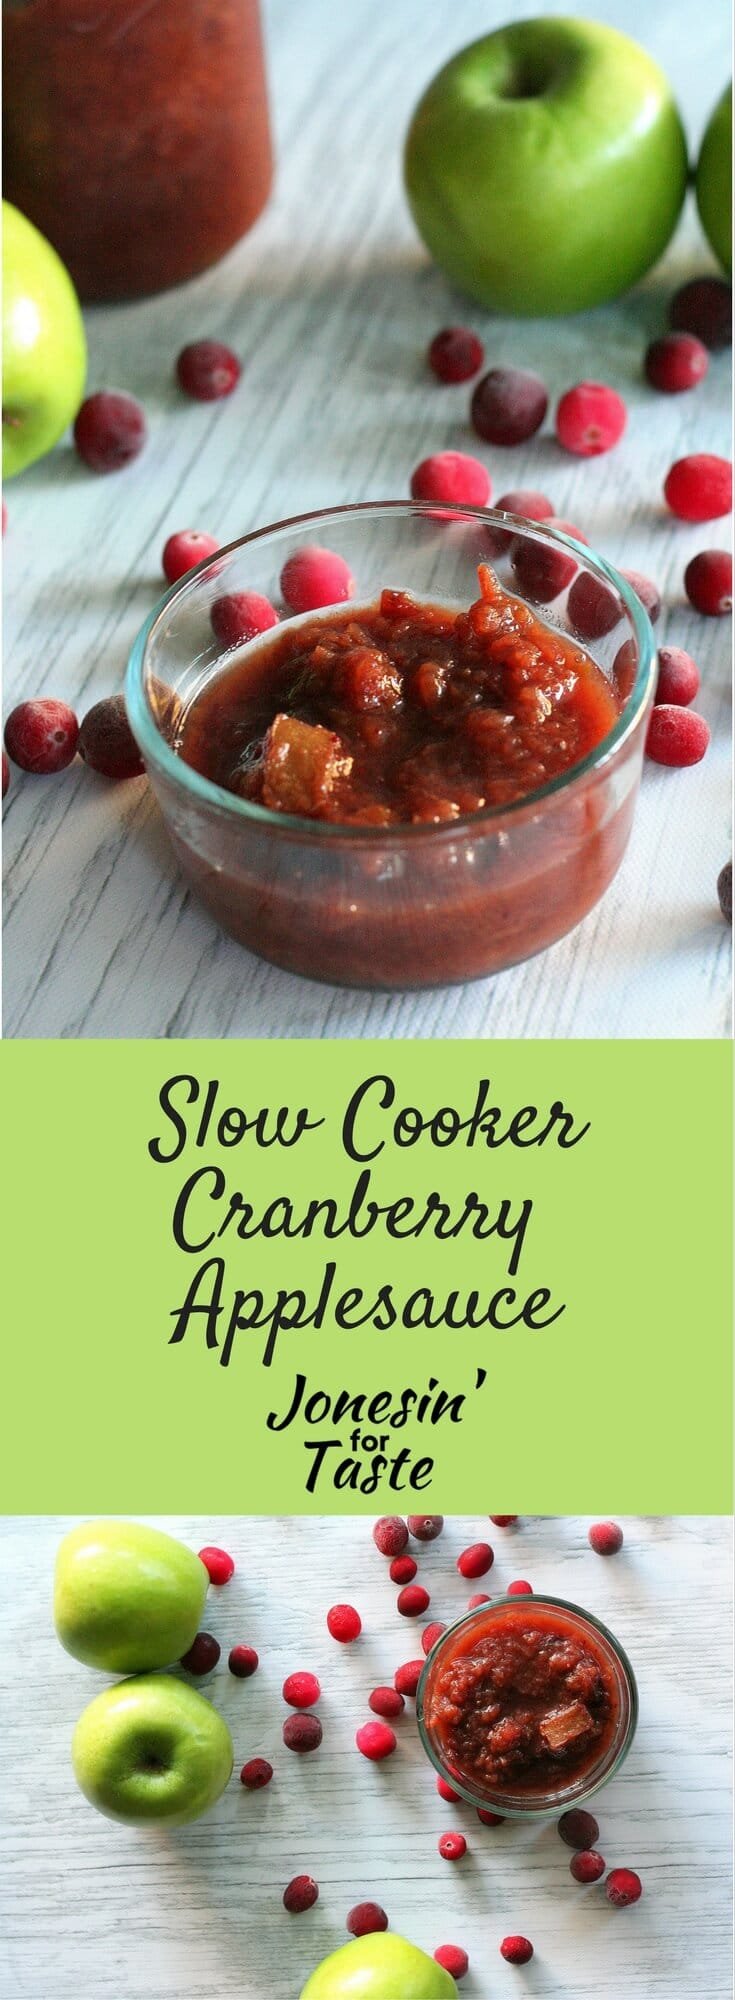 Slow Cooker Cranberry Applesauce is an overnight slow cooker recipe & delicious served over oatmeal, pancakes, and waffles as an alternative to syrup!